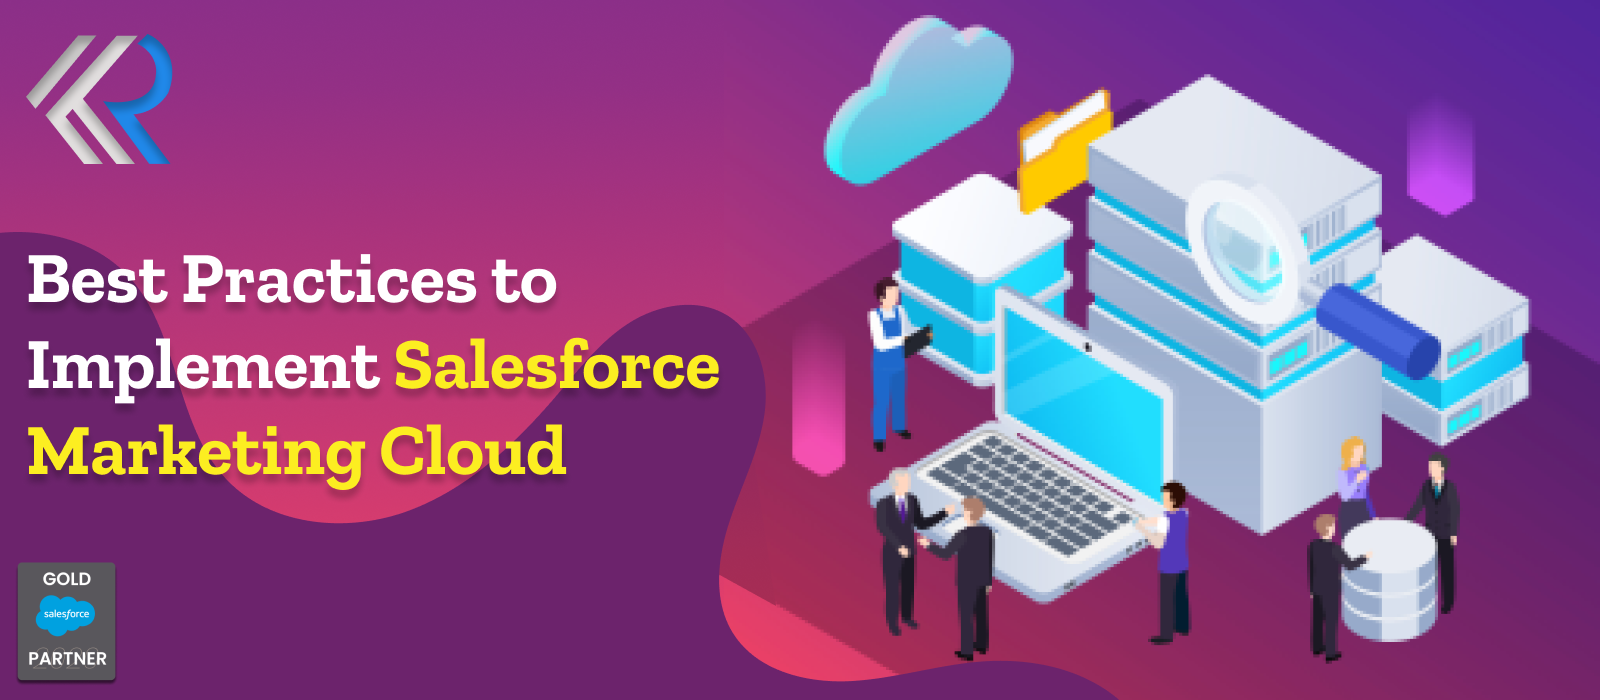 Best Pracrtice to Implement Salesforce Marketing Cloud